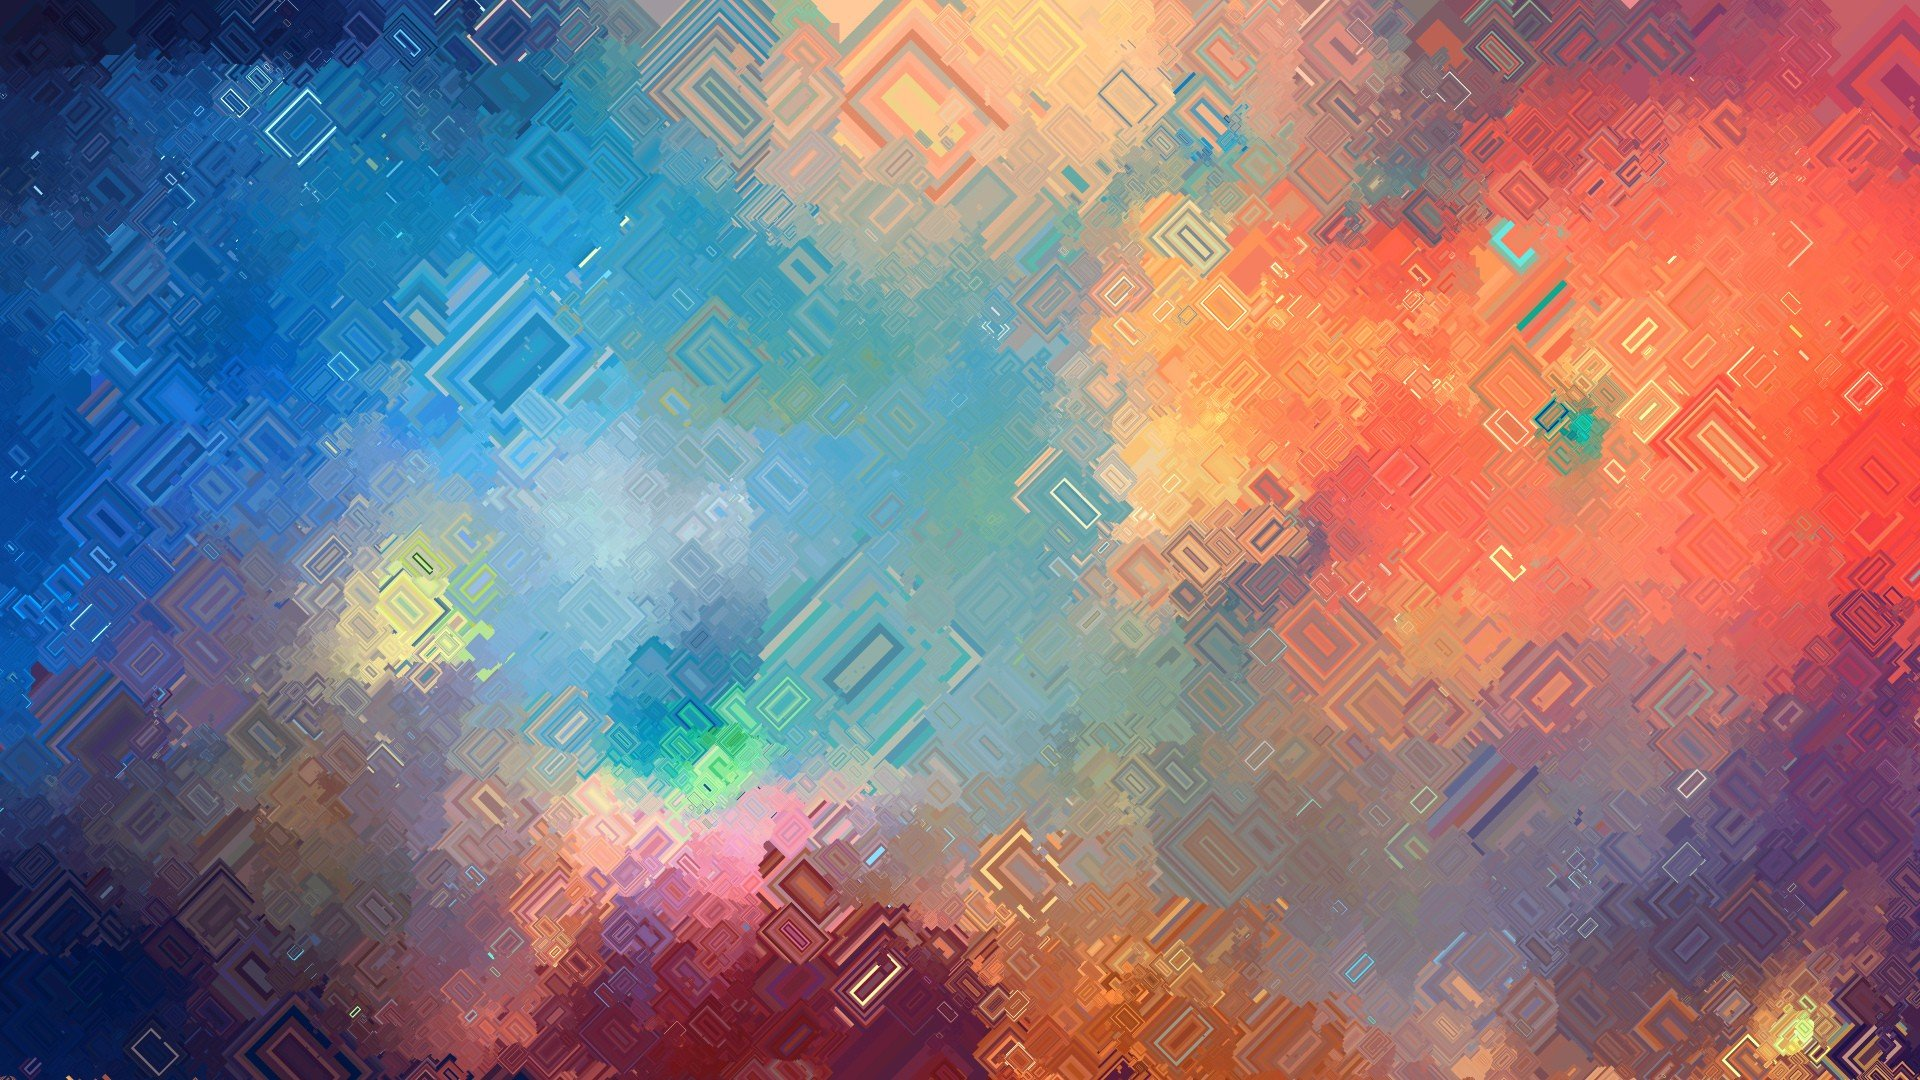 Abstract, Colorful, Digital Art HD Wallpapers / Desktop